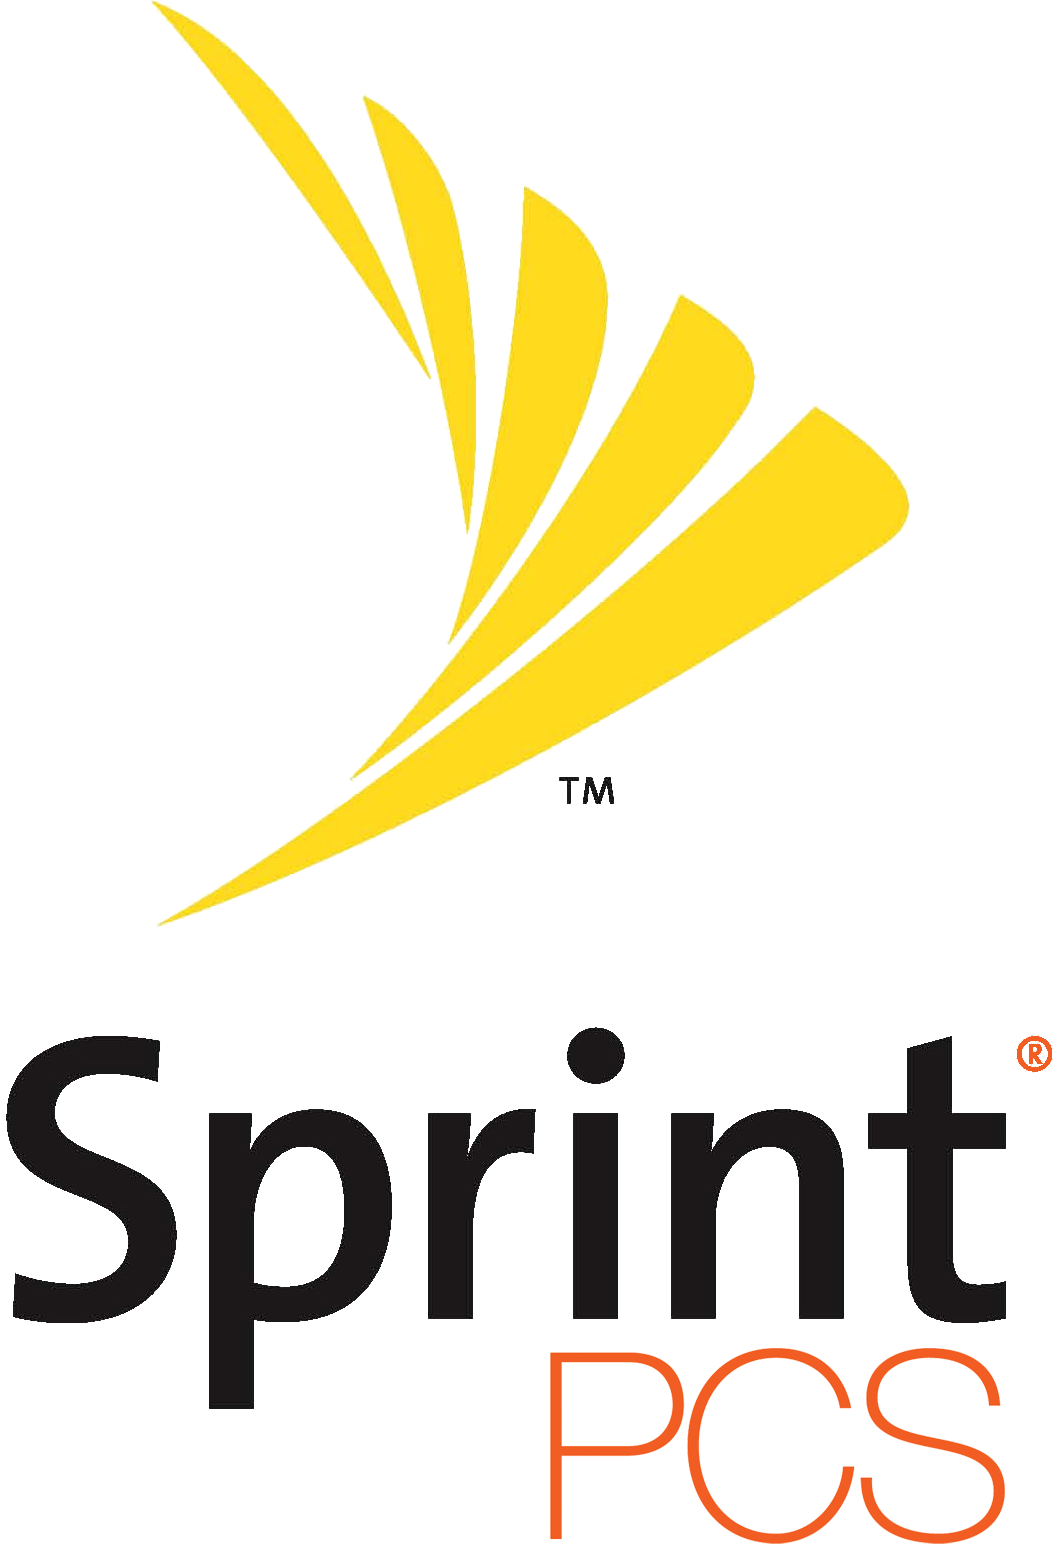 Watch Out, T-Mobile, Sprint May Be Gunning for MetroPCS Again